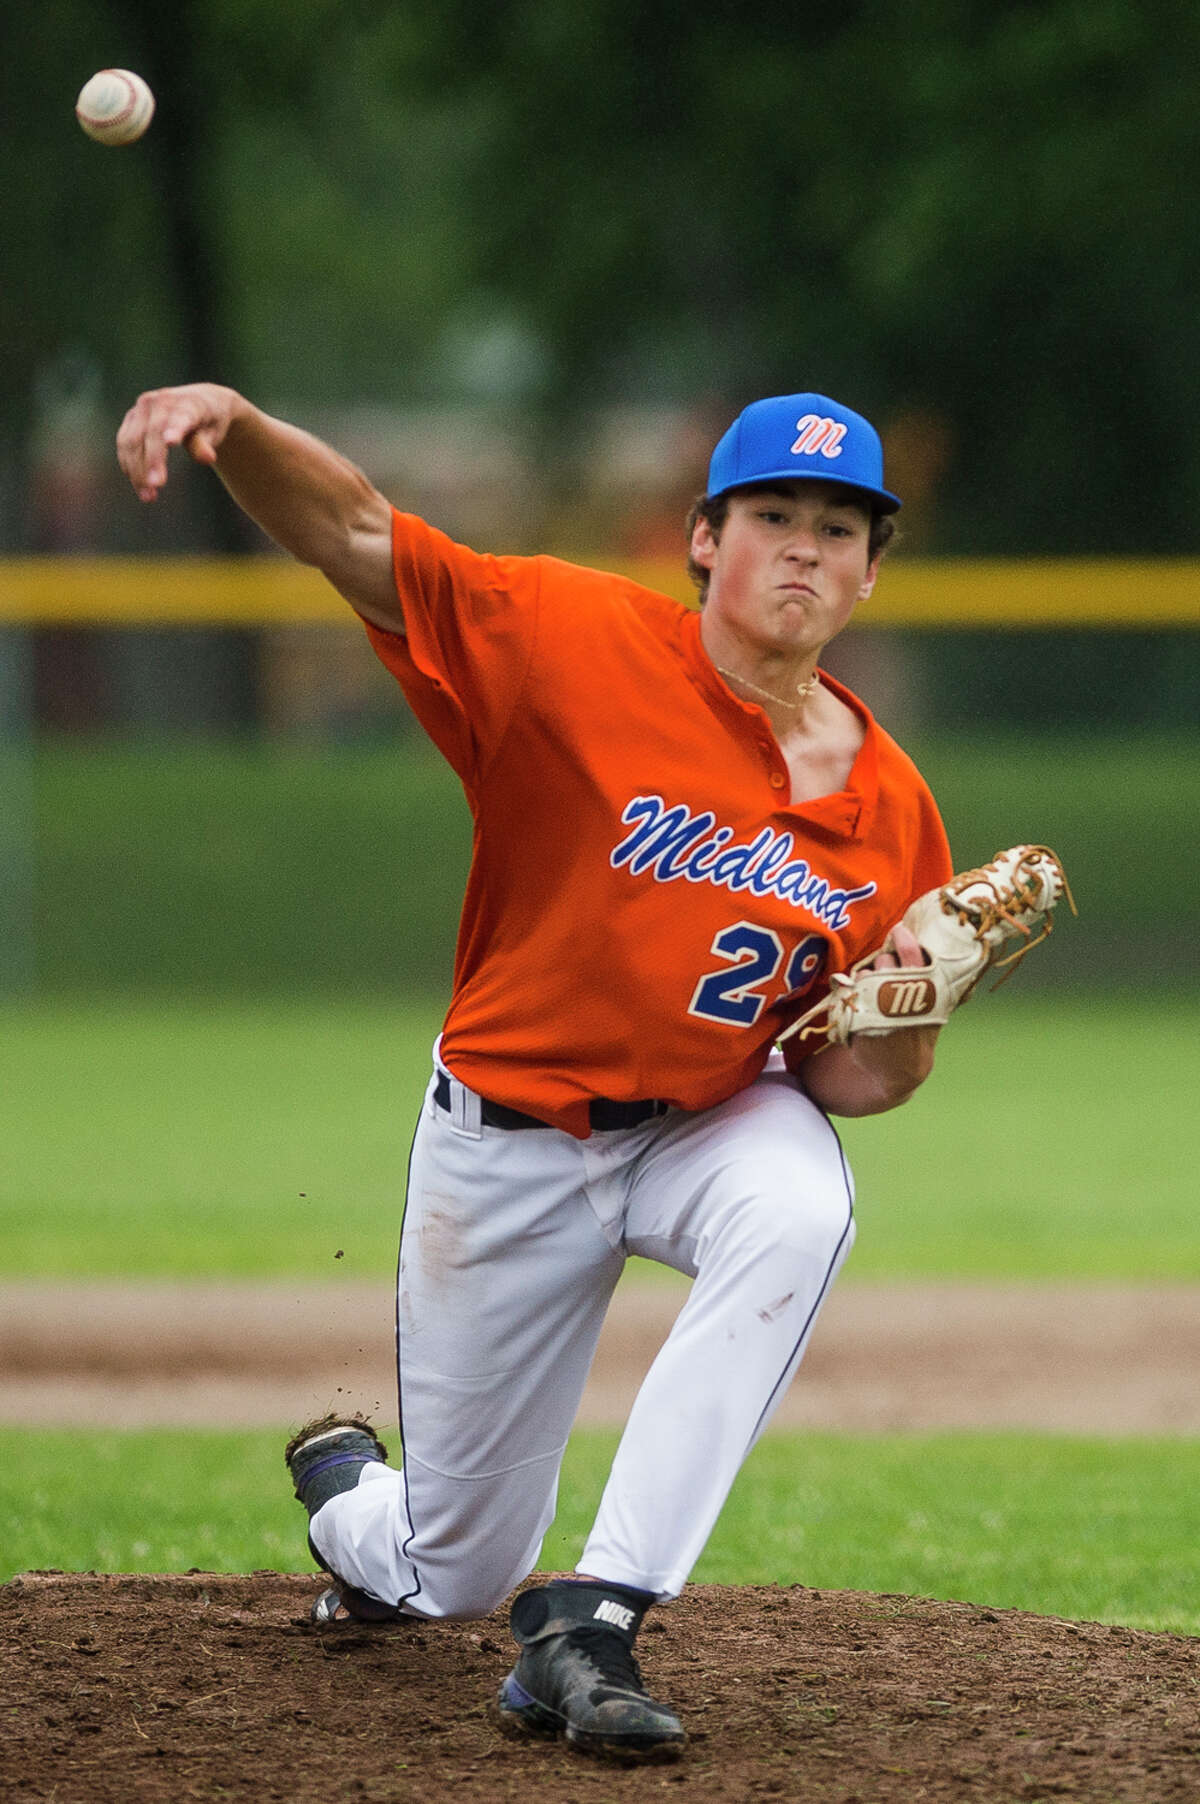 Midland's Ben Vansumeren throws out a pitch during a Junior League district final against Freeland Thursday, July 8, 2021 at Plymouth Park in Midland. (Katy Kildee/kkildee@mdn.net)